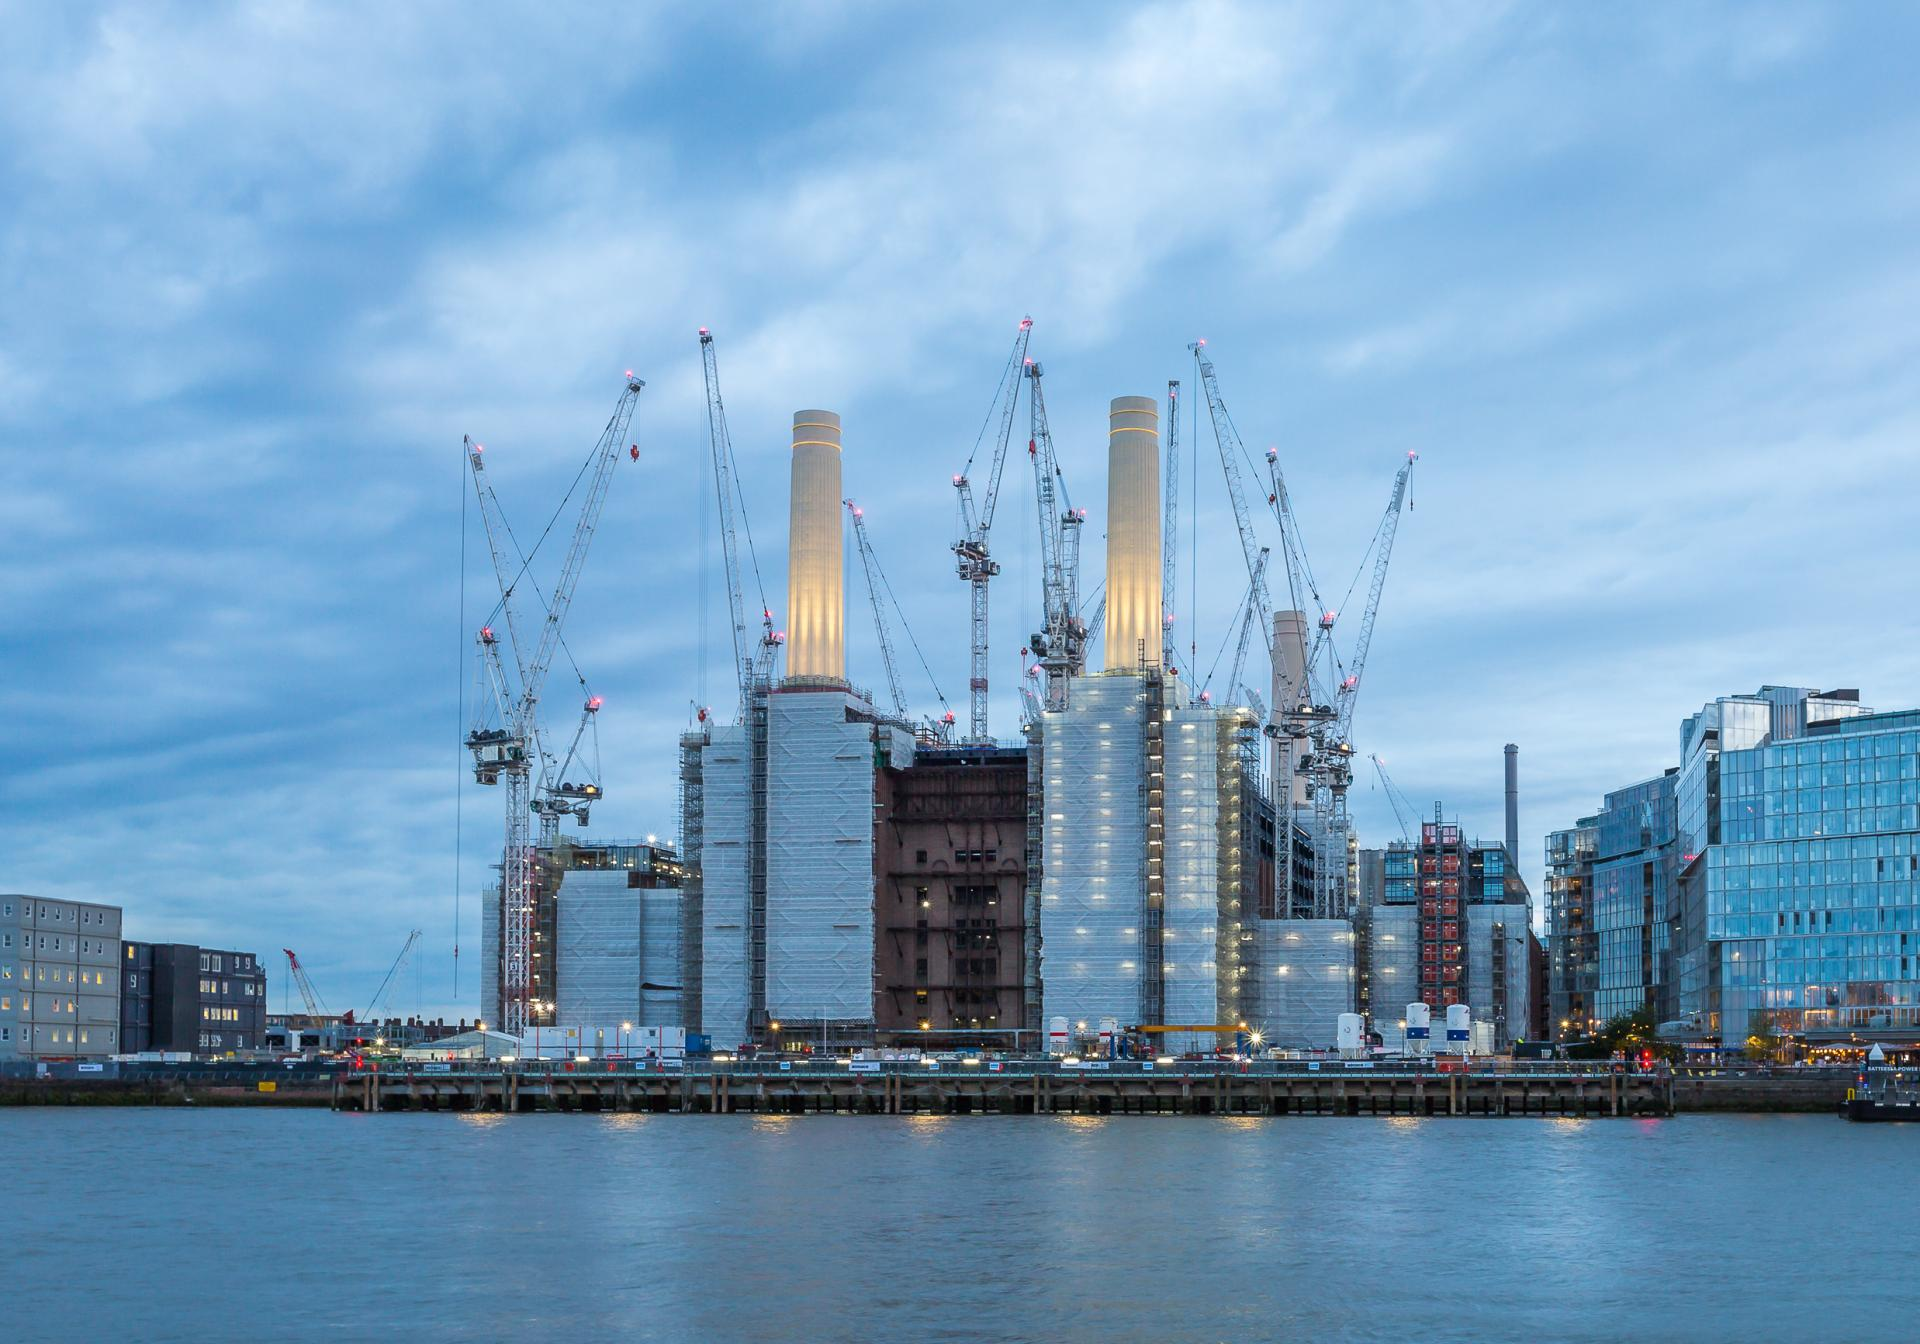 Battersea Power Station taken just after sundown when the light is a blue colour.London Architectural Photographer, Liane Ryan Photography